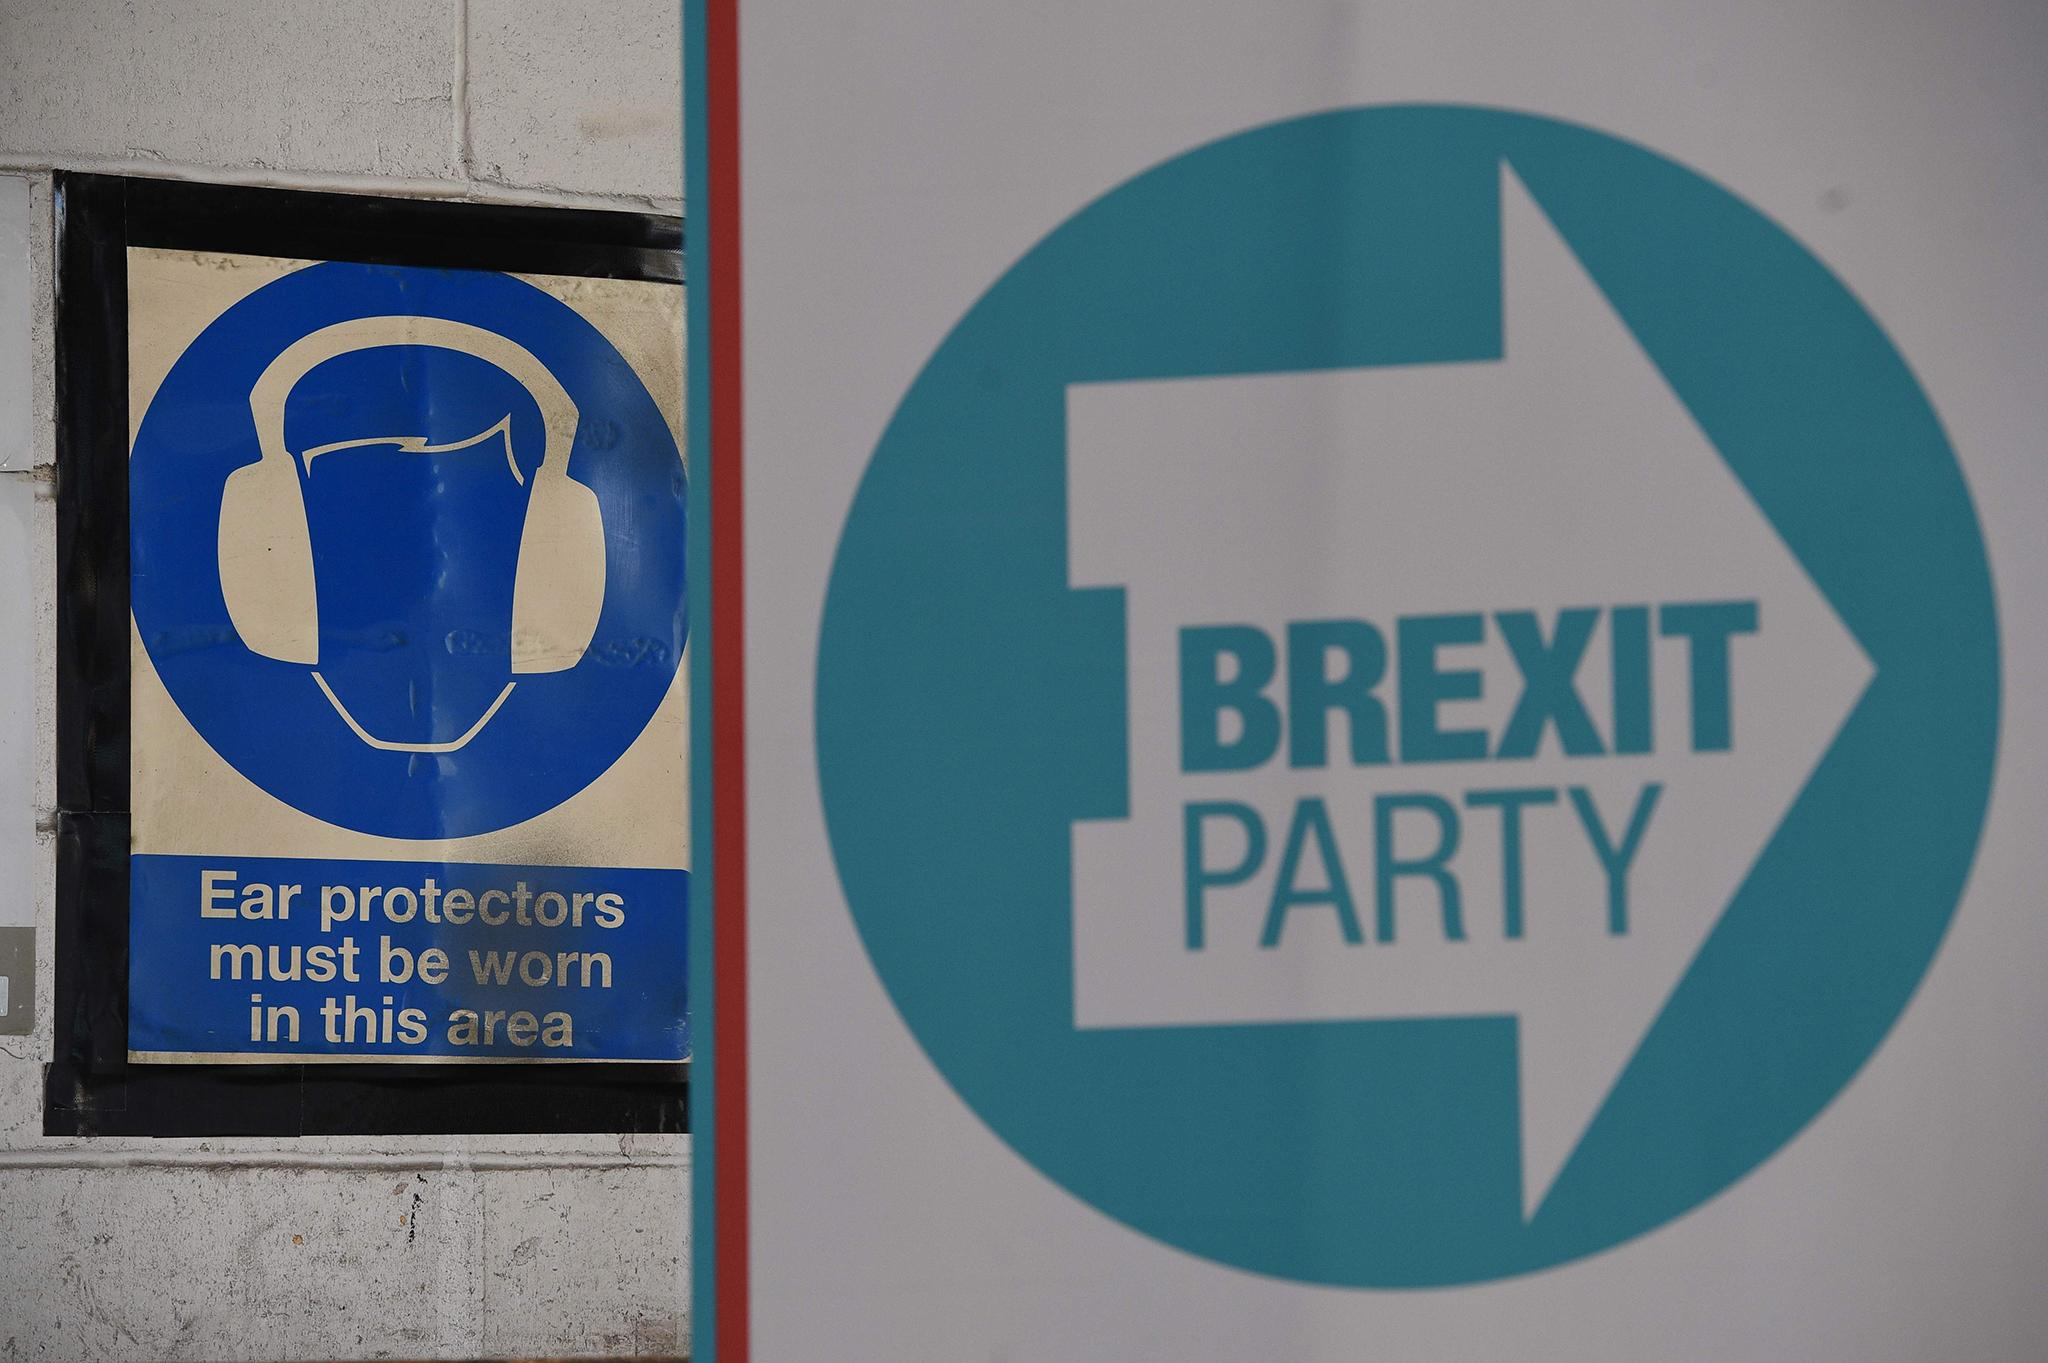 Brexit Party ordered to overhaul fundraising methods to